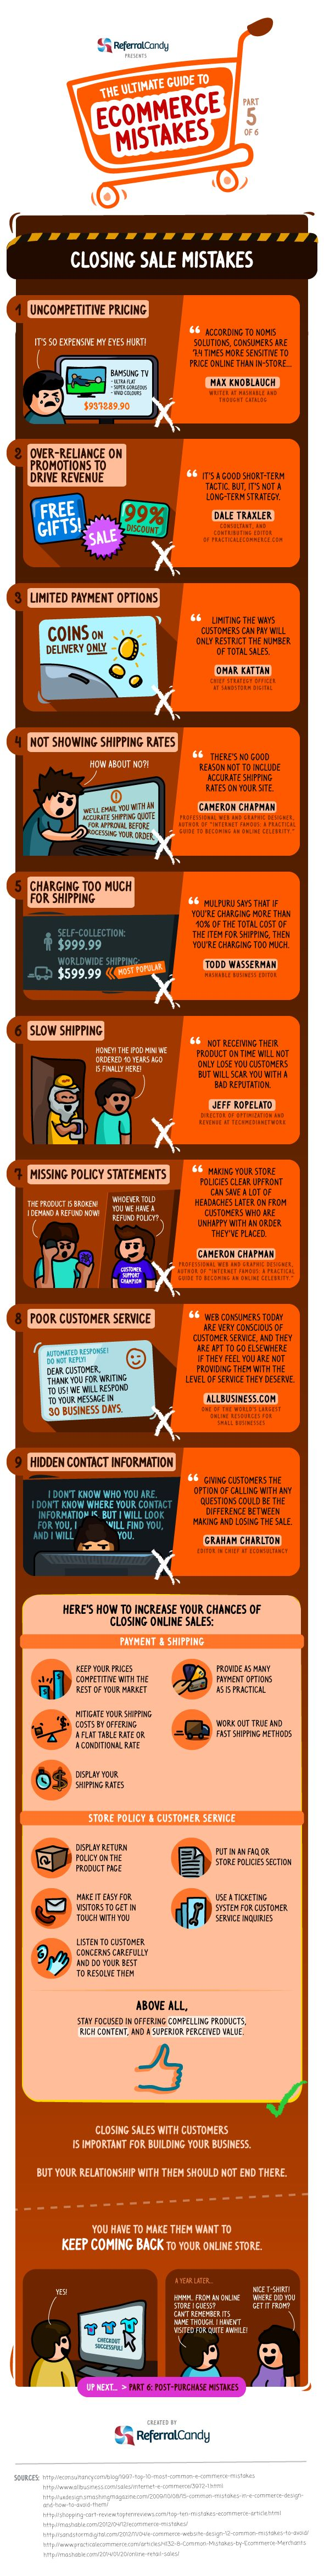 The Ultimate Guide to Closing Sale Mistakes. Great E-Commerce tips. For more Marketing tips and resources visit www.socialmediabusinessacademy.com Marketing Infographic